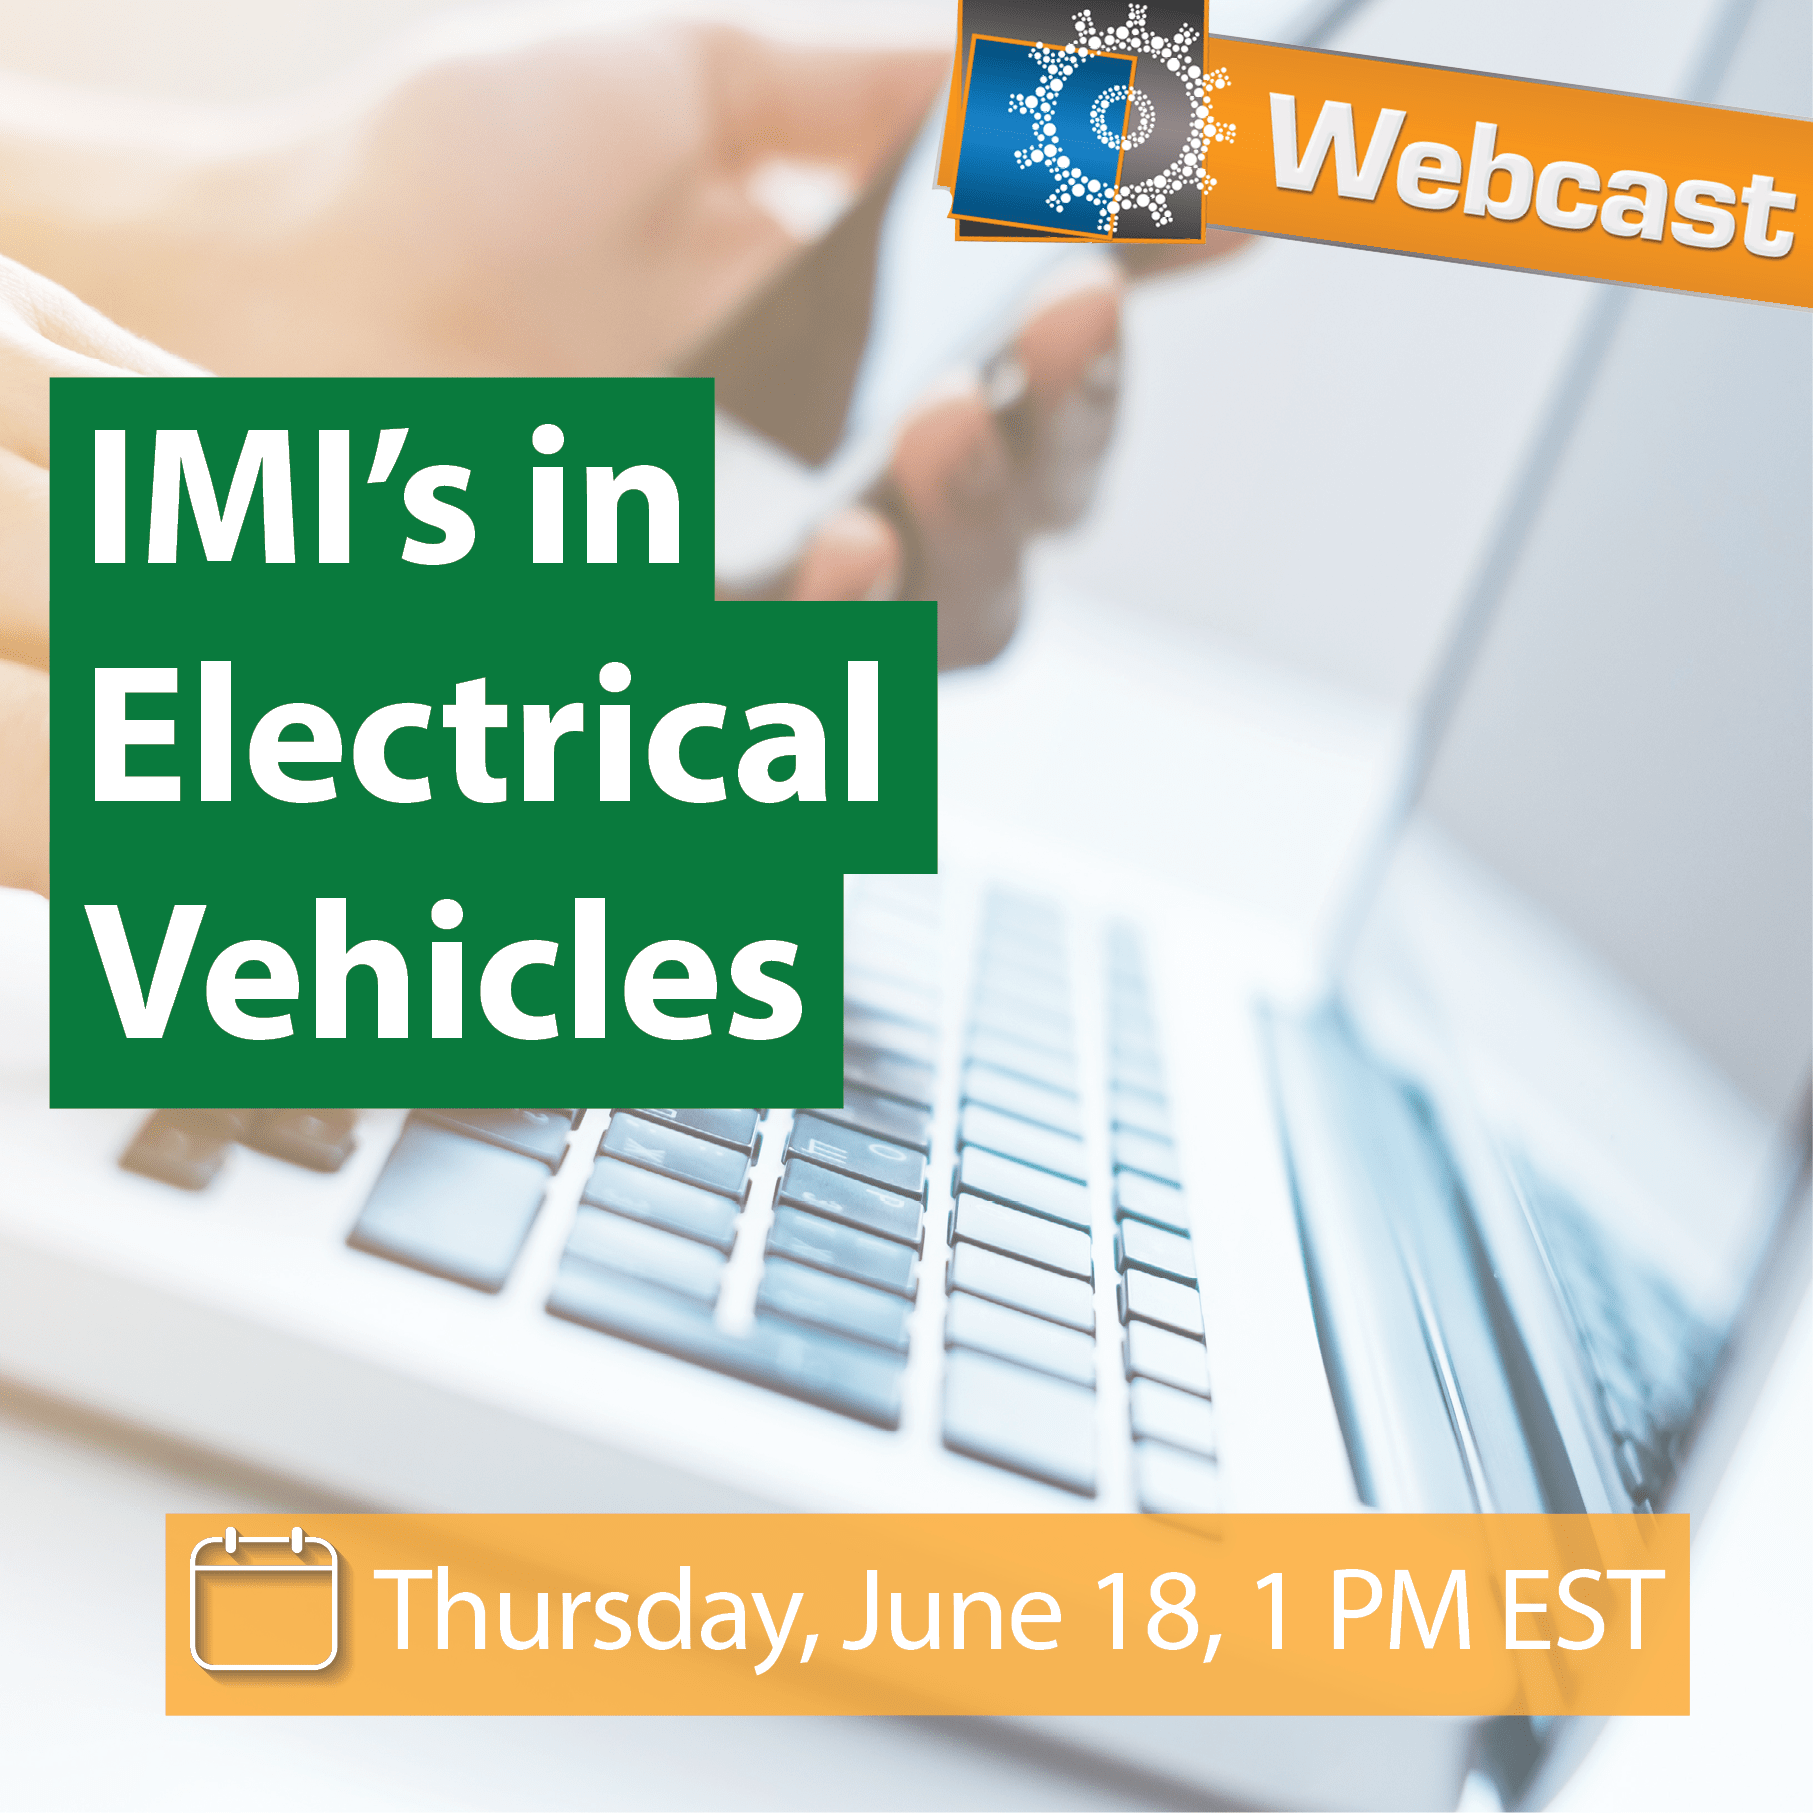 Webcast: IMI's in Electrical Vehicles